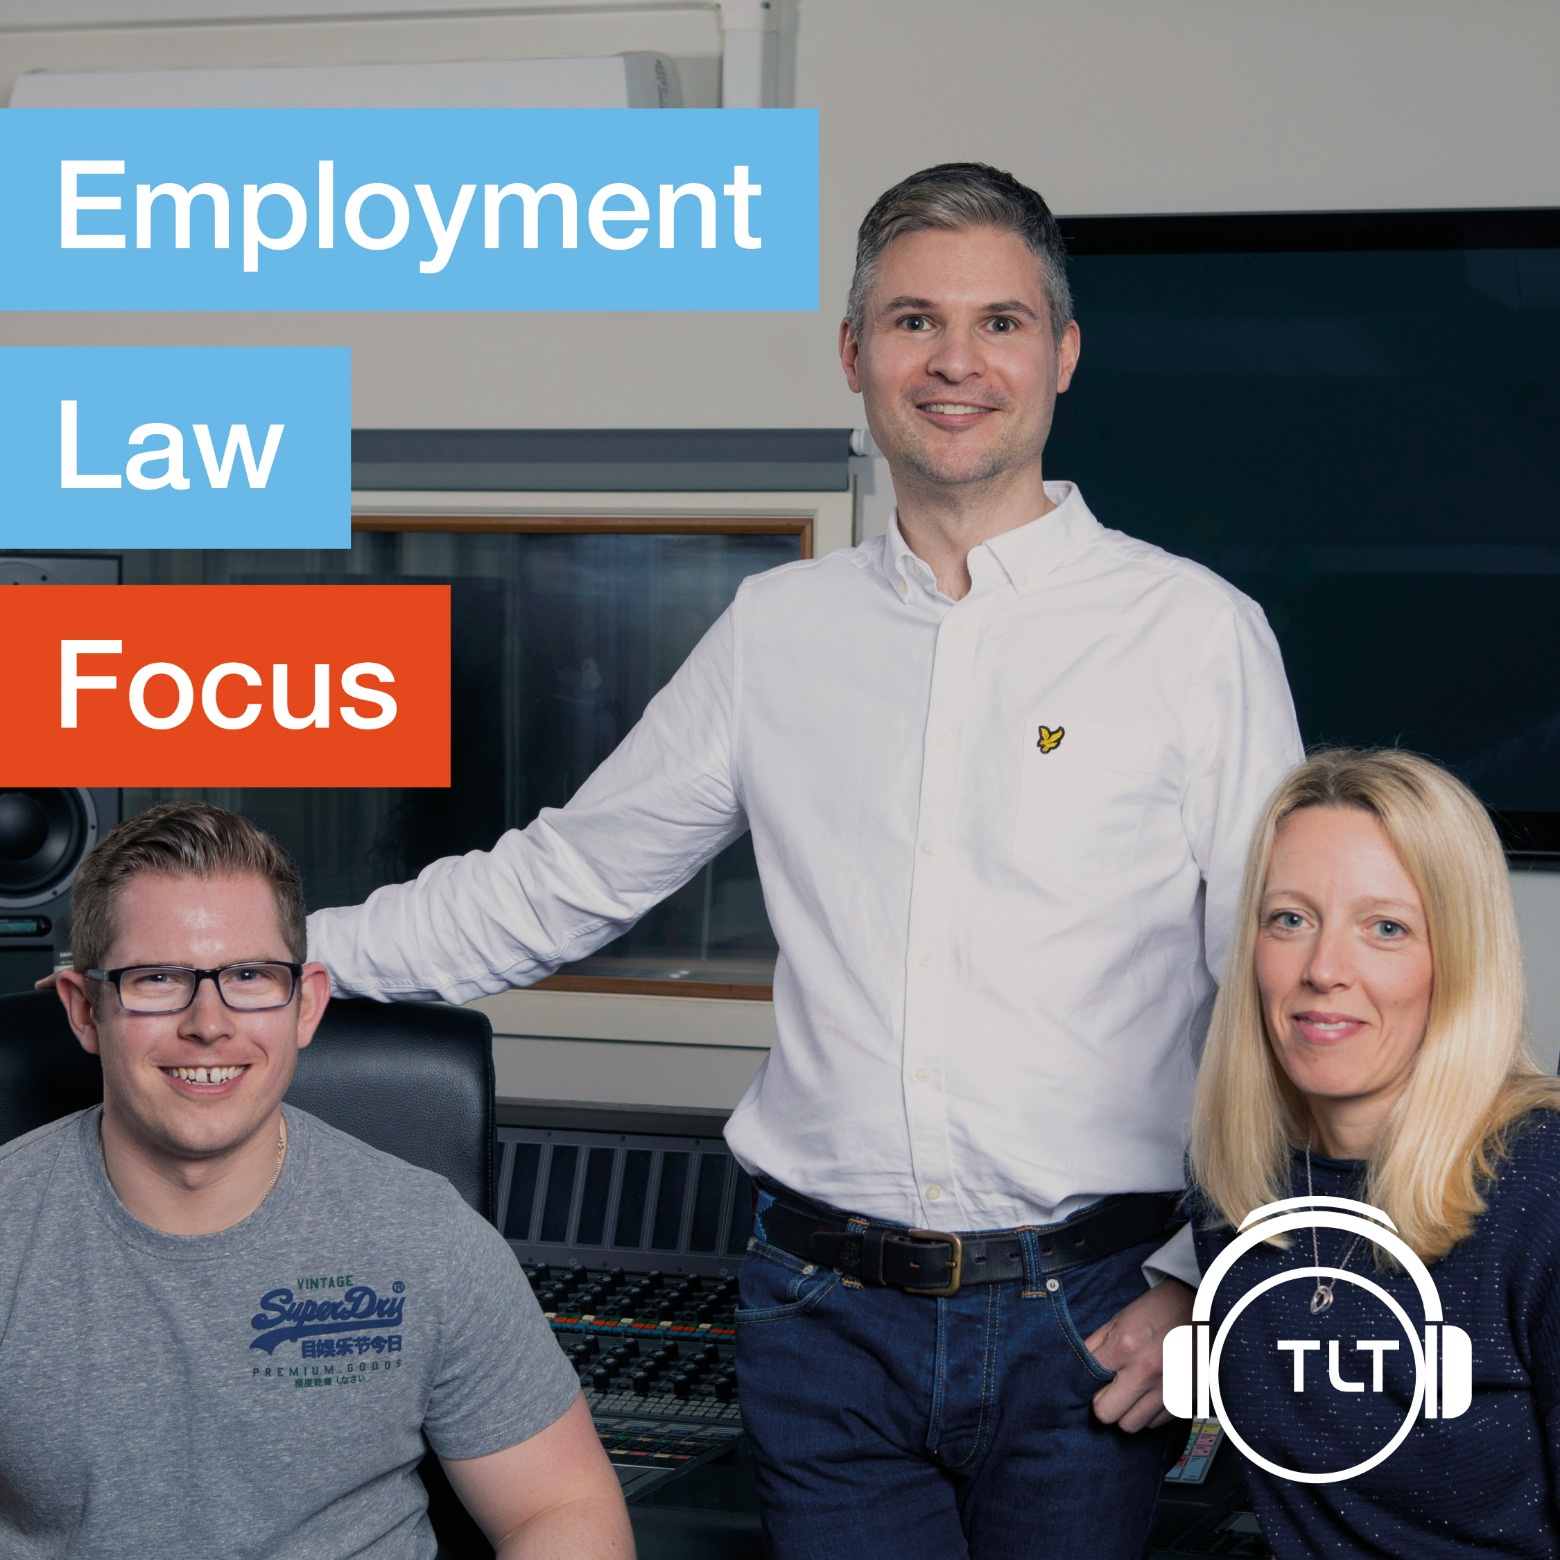 Introducing Employment Law Focus